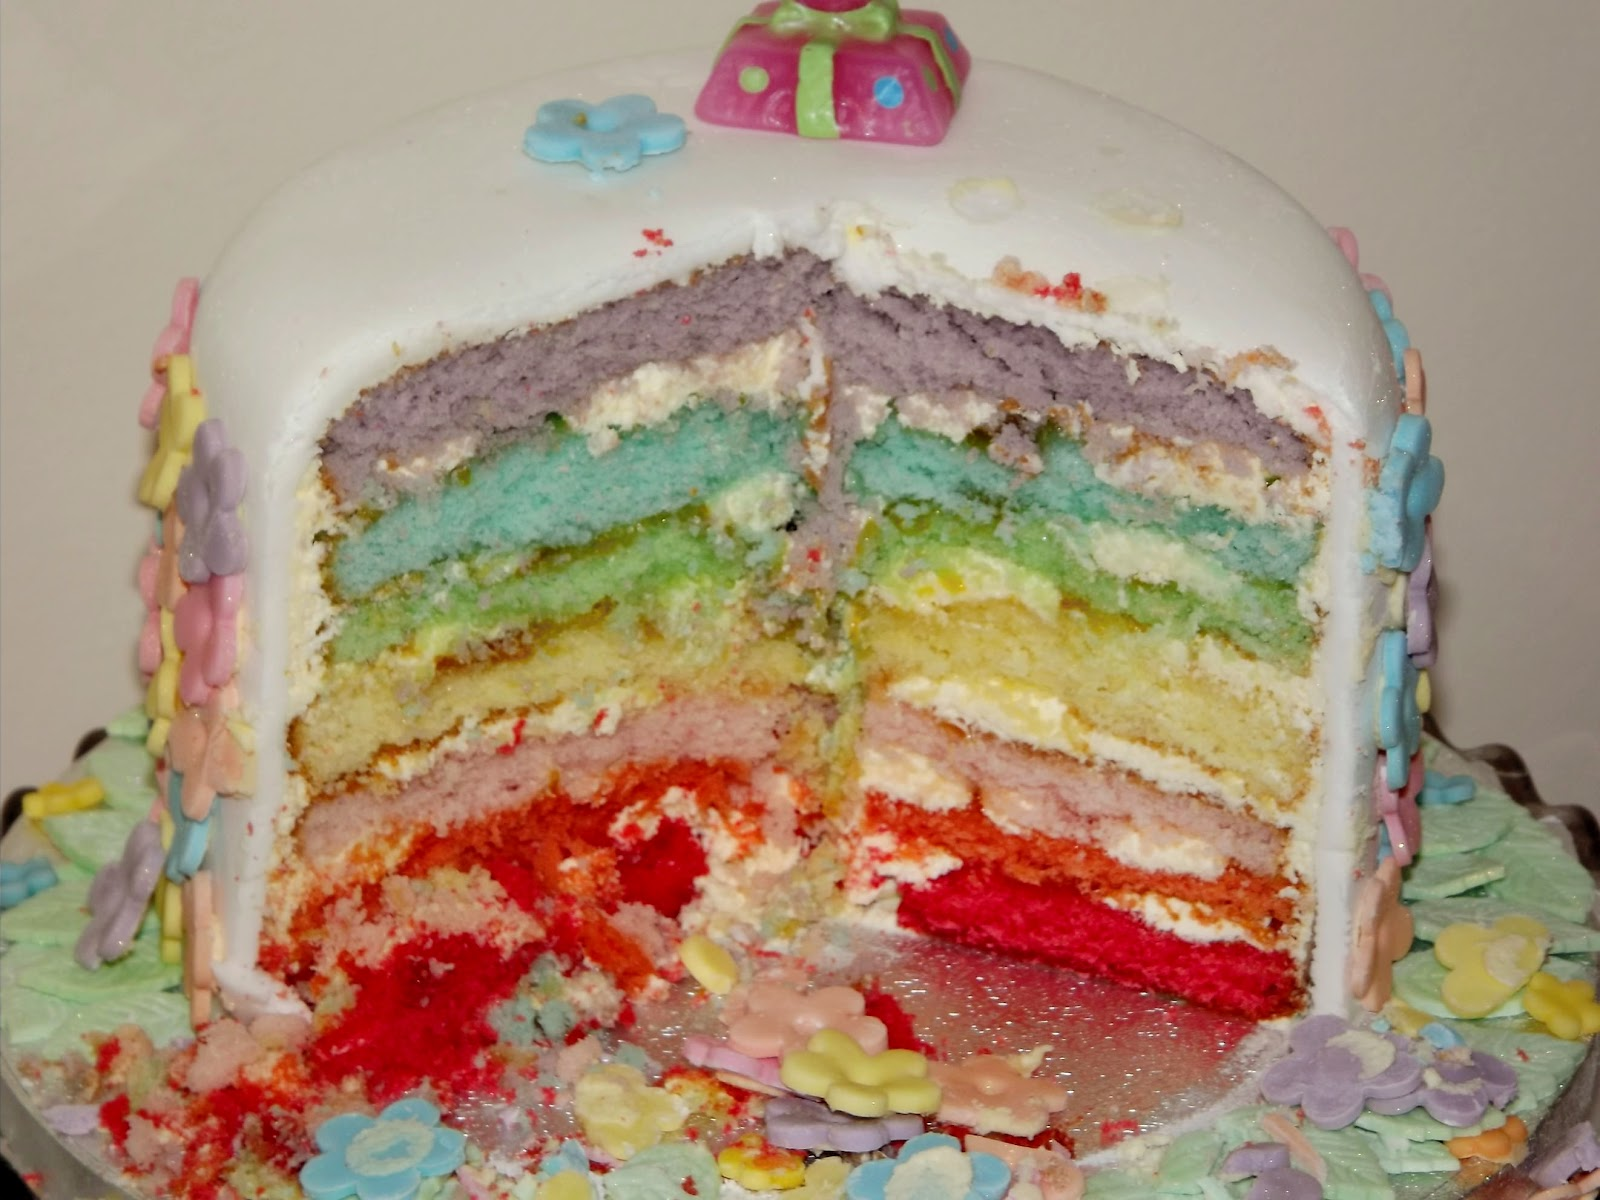 1st Birthday Rainbow Cake 7 Layer Covered In Fondant And Decorated With Flowers Leaves Handmade Marzipan Bees